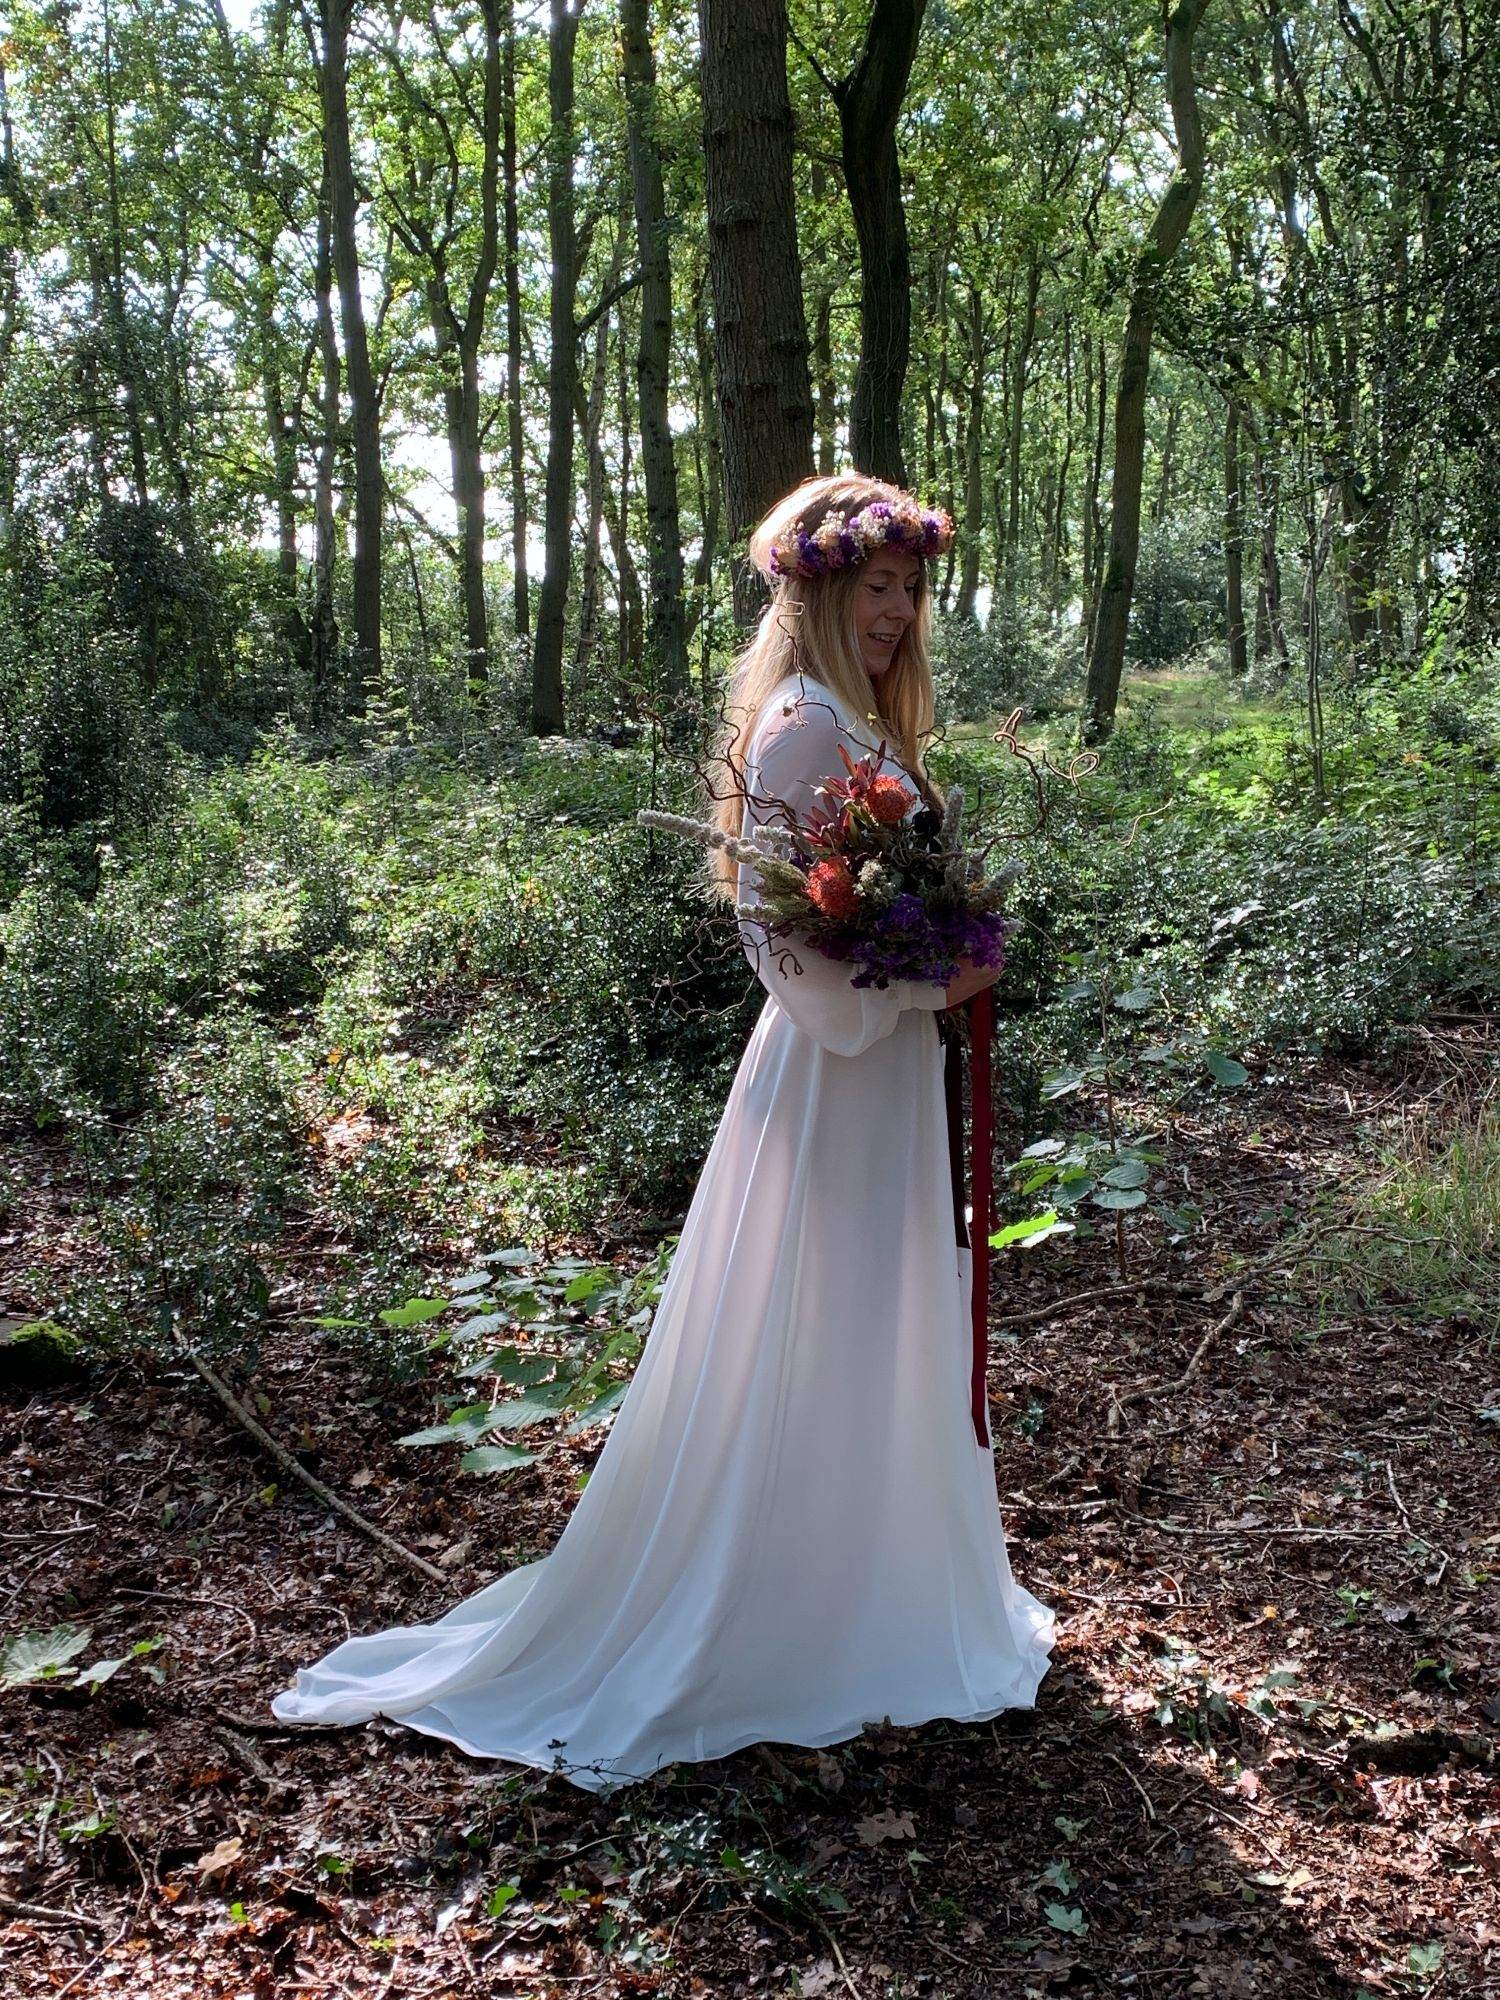 boho wedding dress, handmade wedding gown, flower crown, festival wedding dress